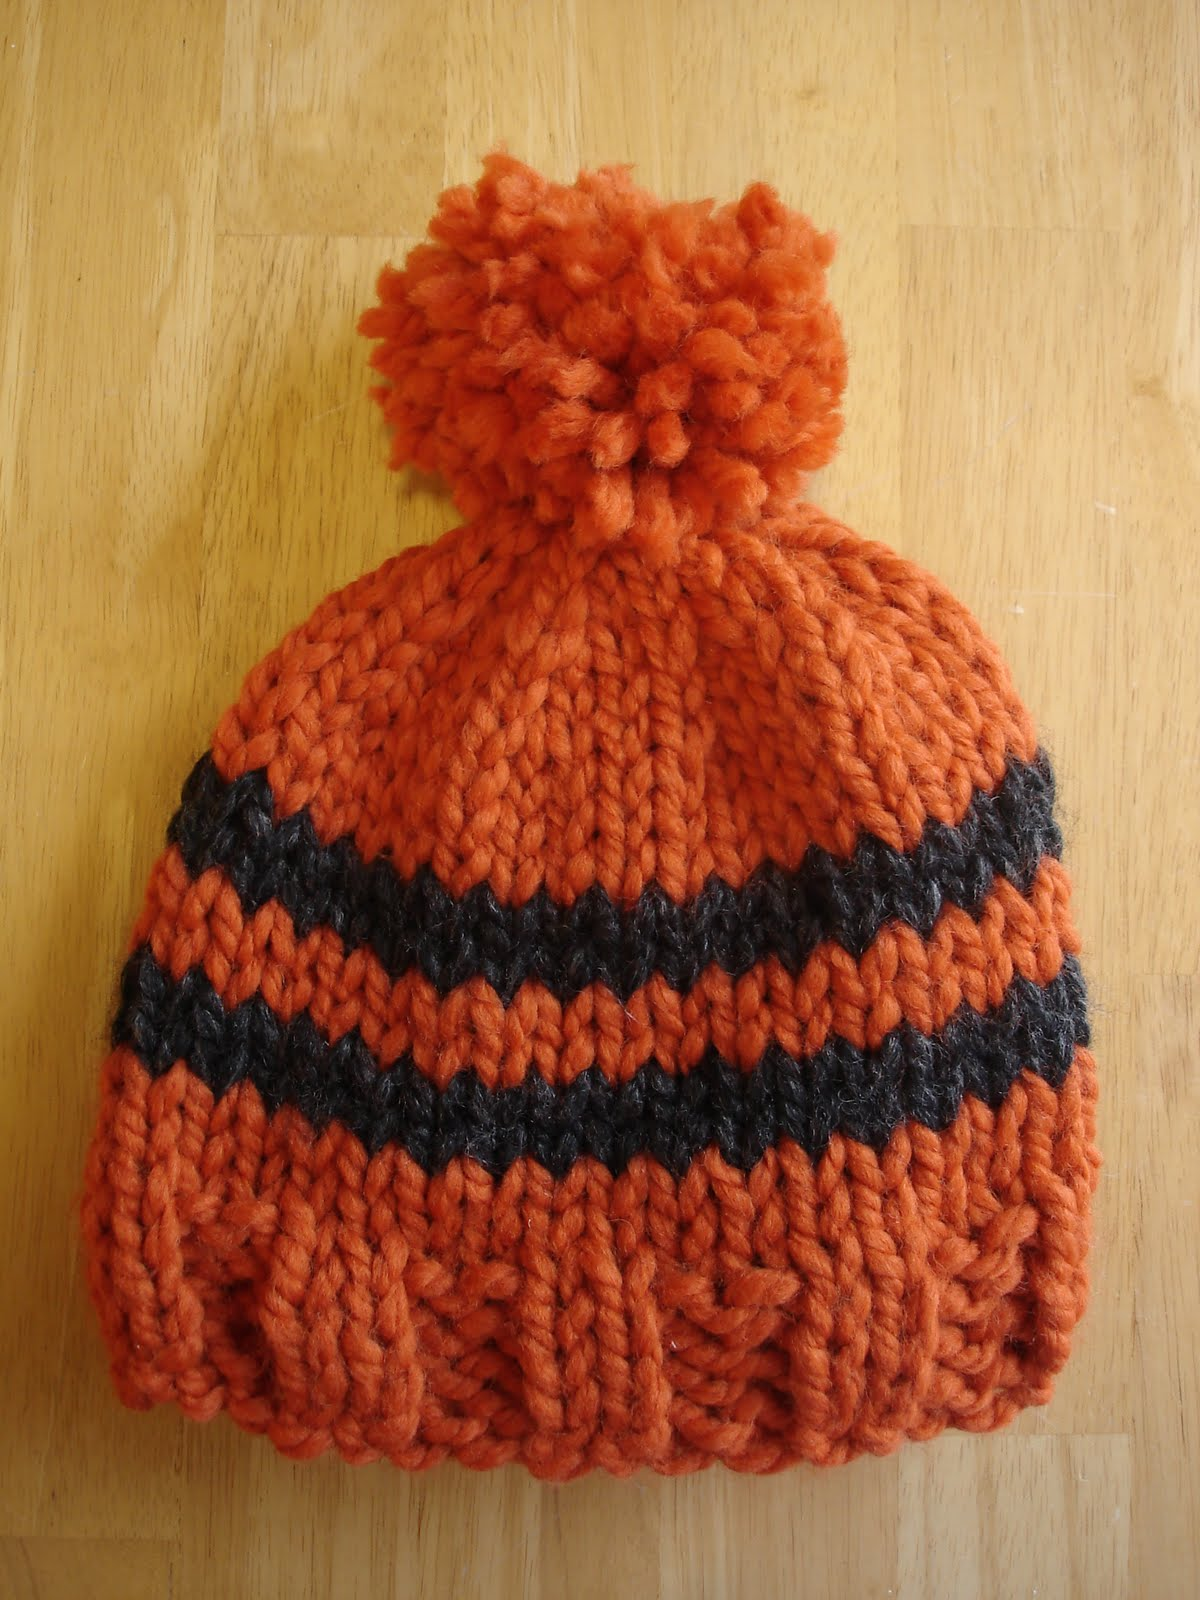 Colorful Knit Kid Hat Pattern Adornment - Easy Scarf Knitting ...